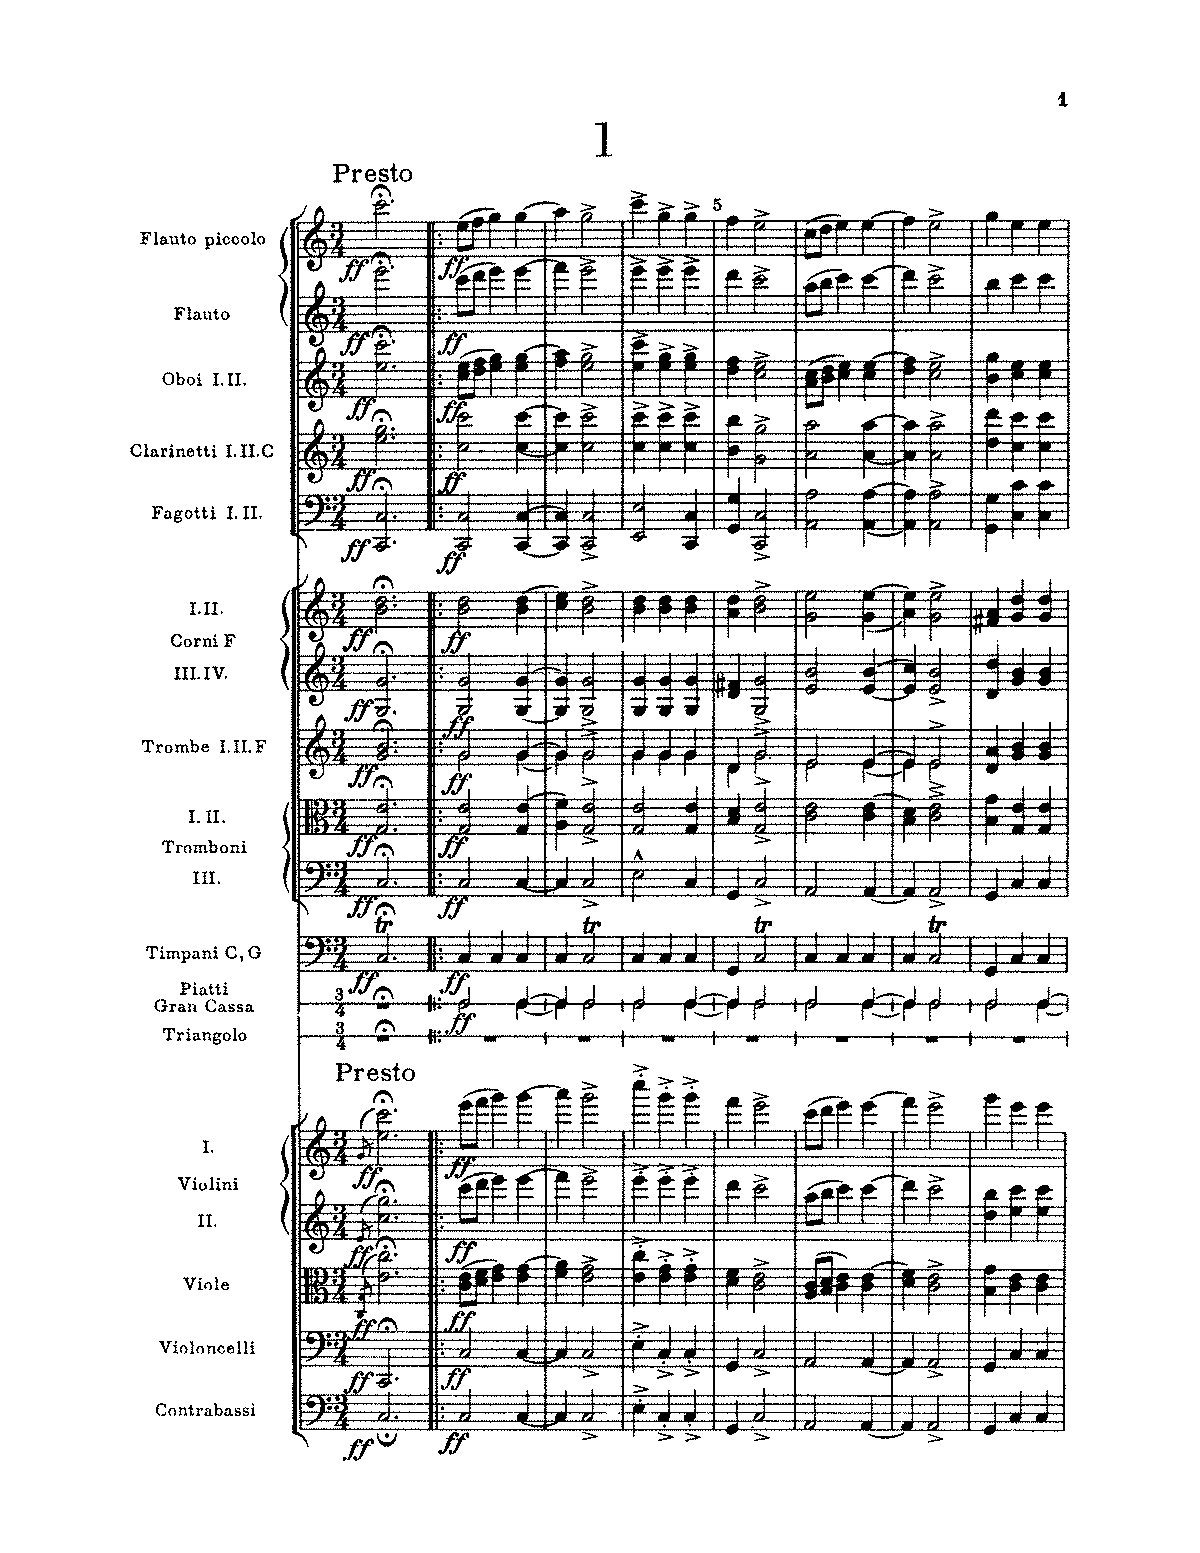 PMLP04972-Dvorak Slavonic Dances No.1 full score.pdf